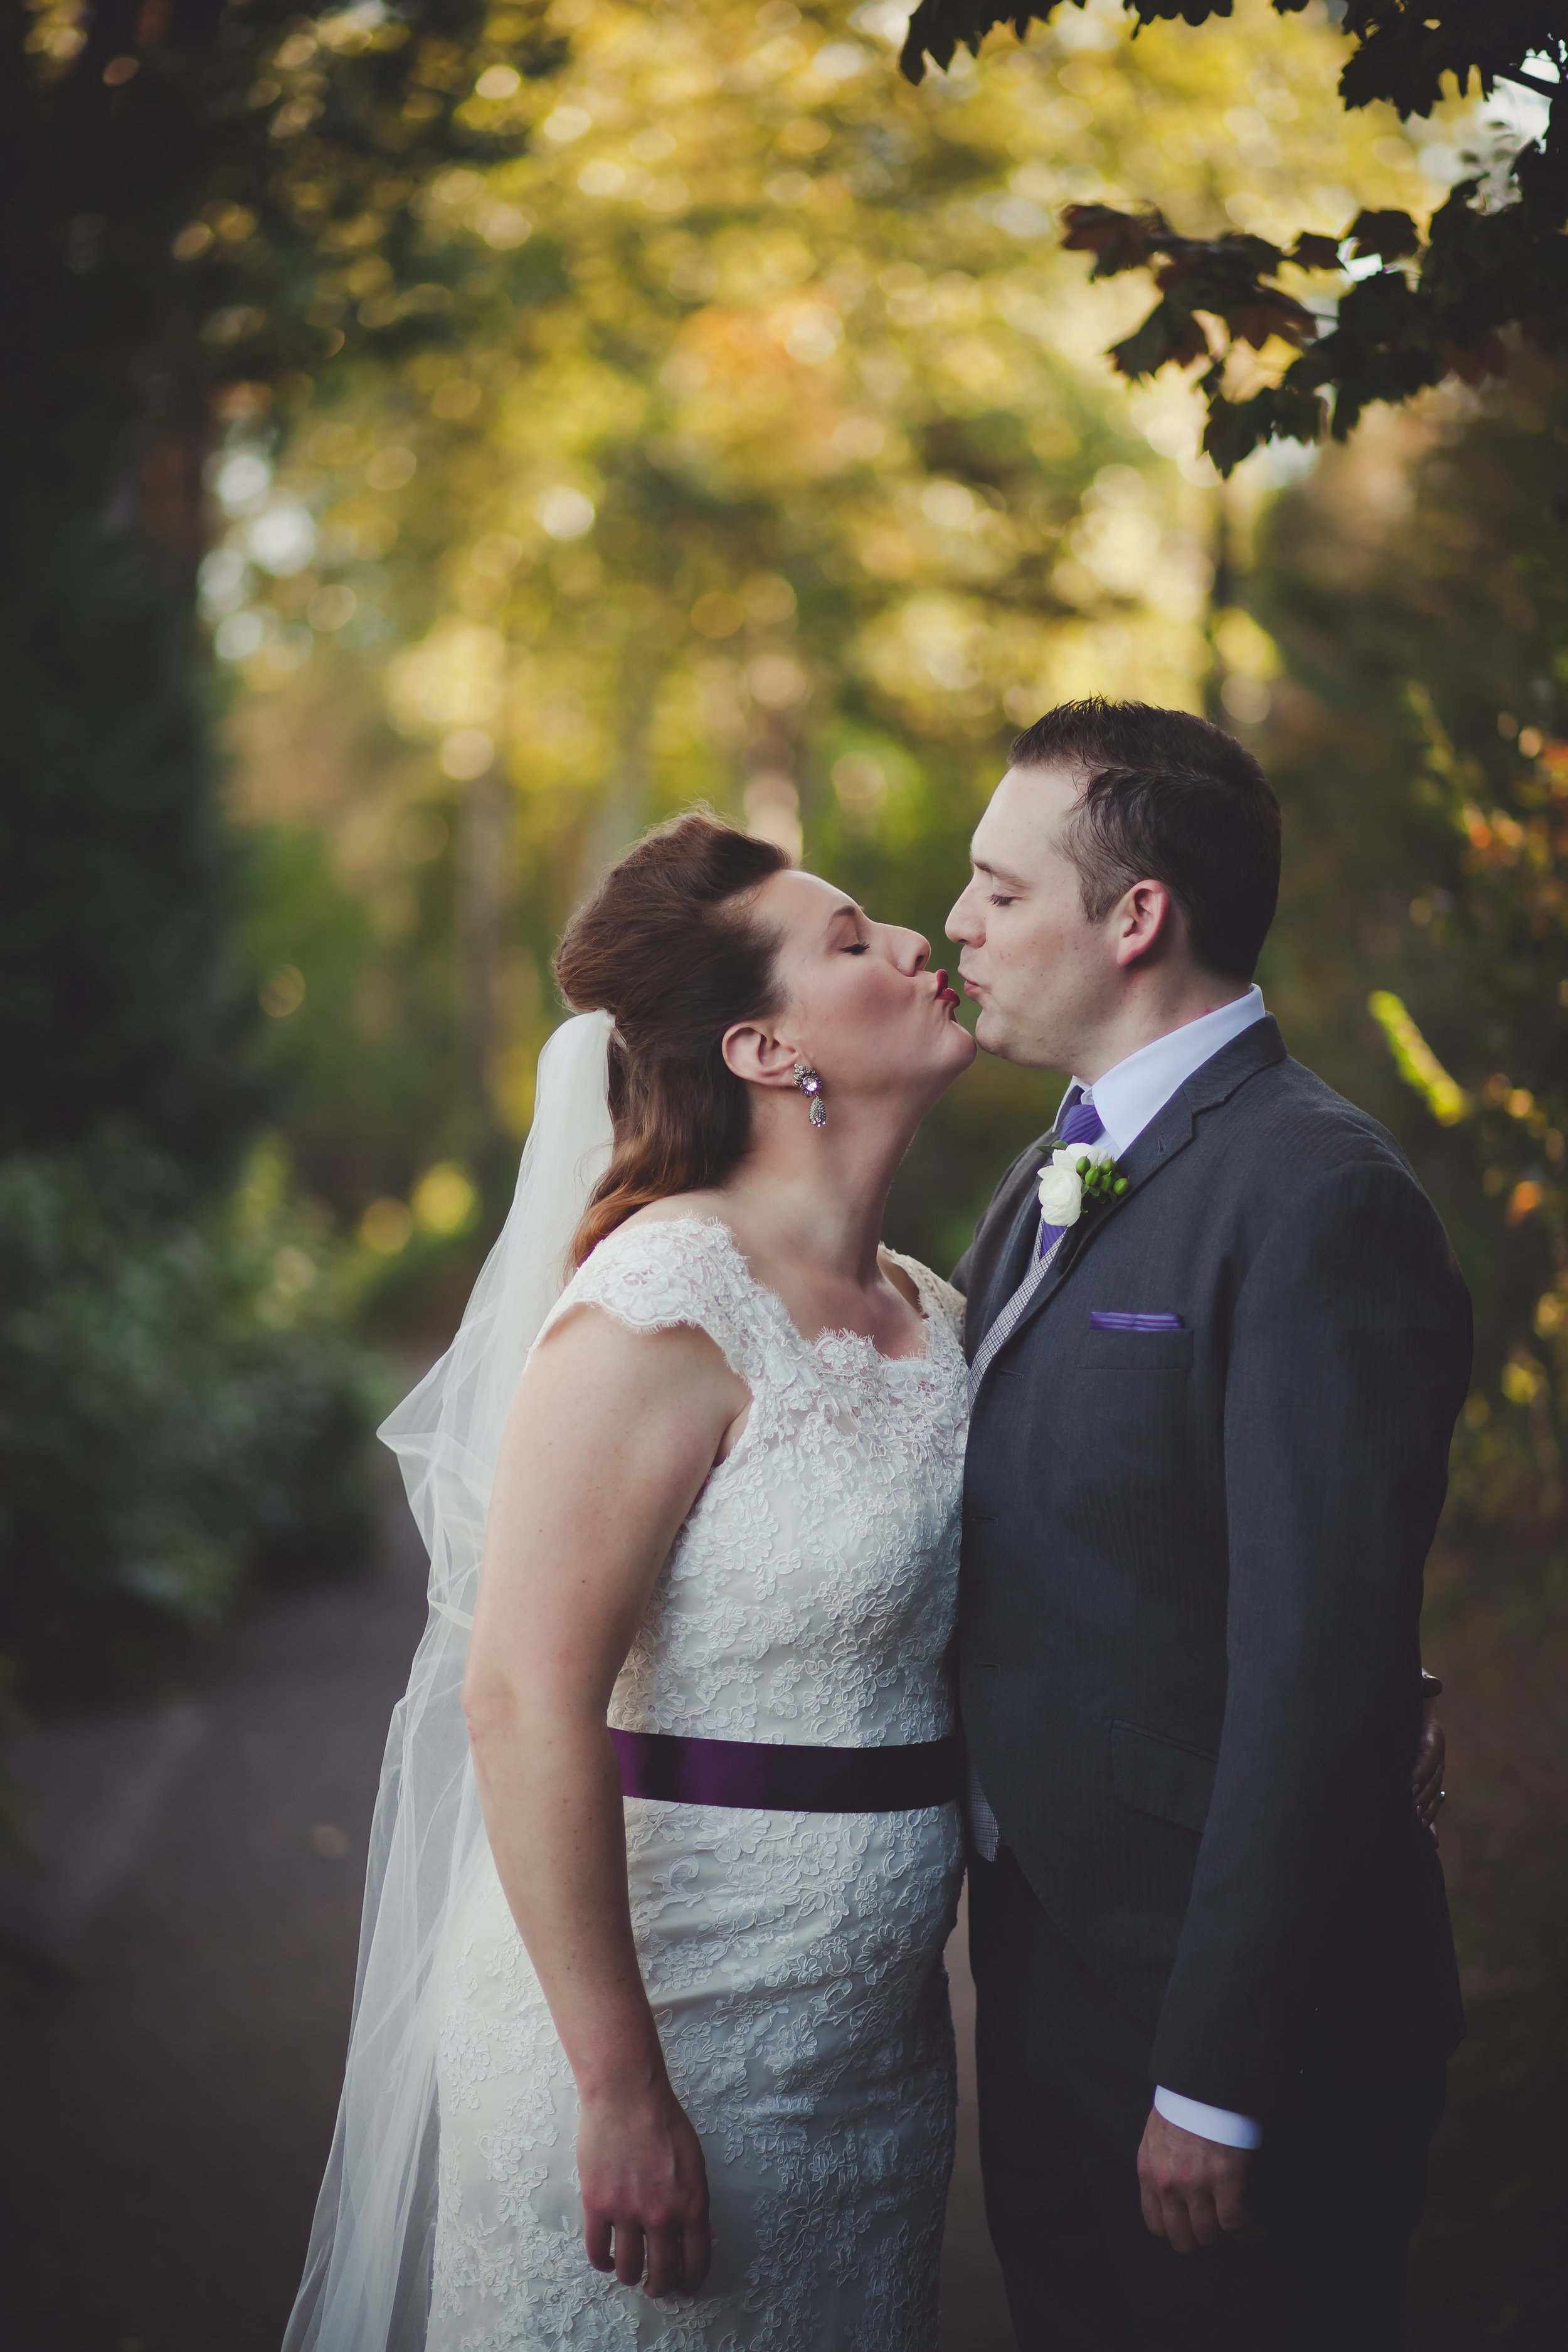 Bridalbliss.com | Portland Wedding | Oregon Event Planning and Design | Your Street Photography